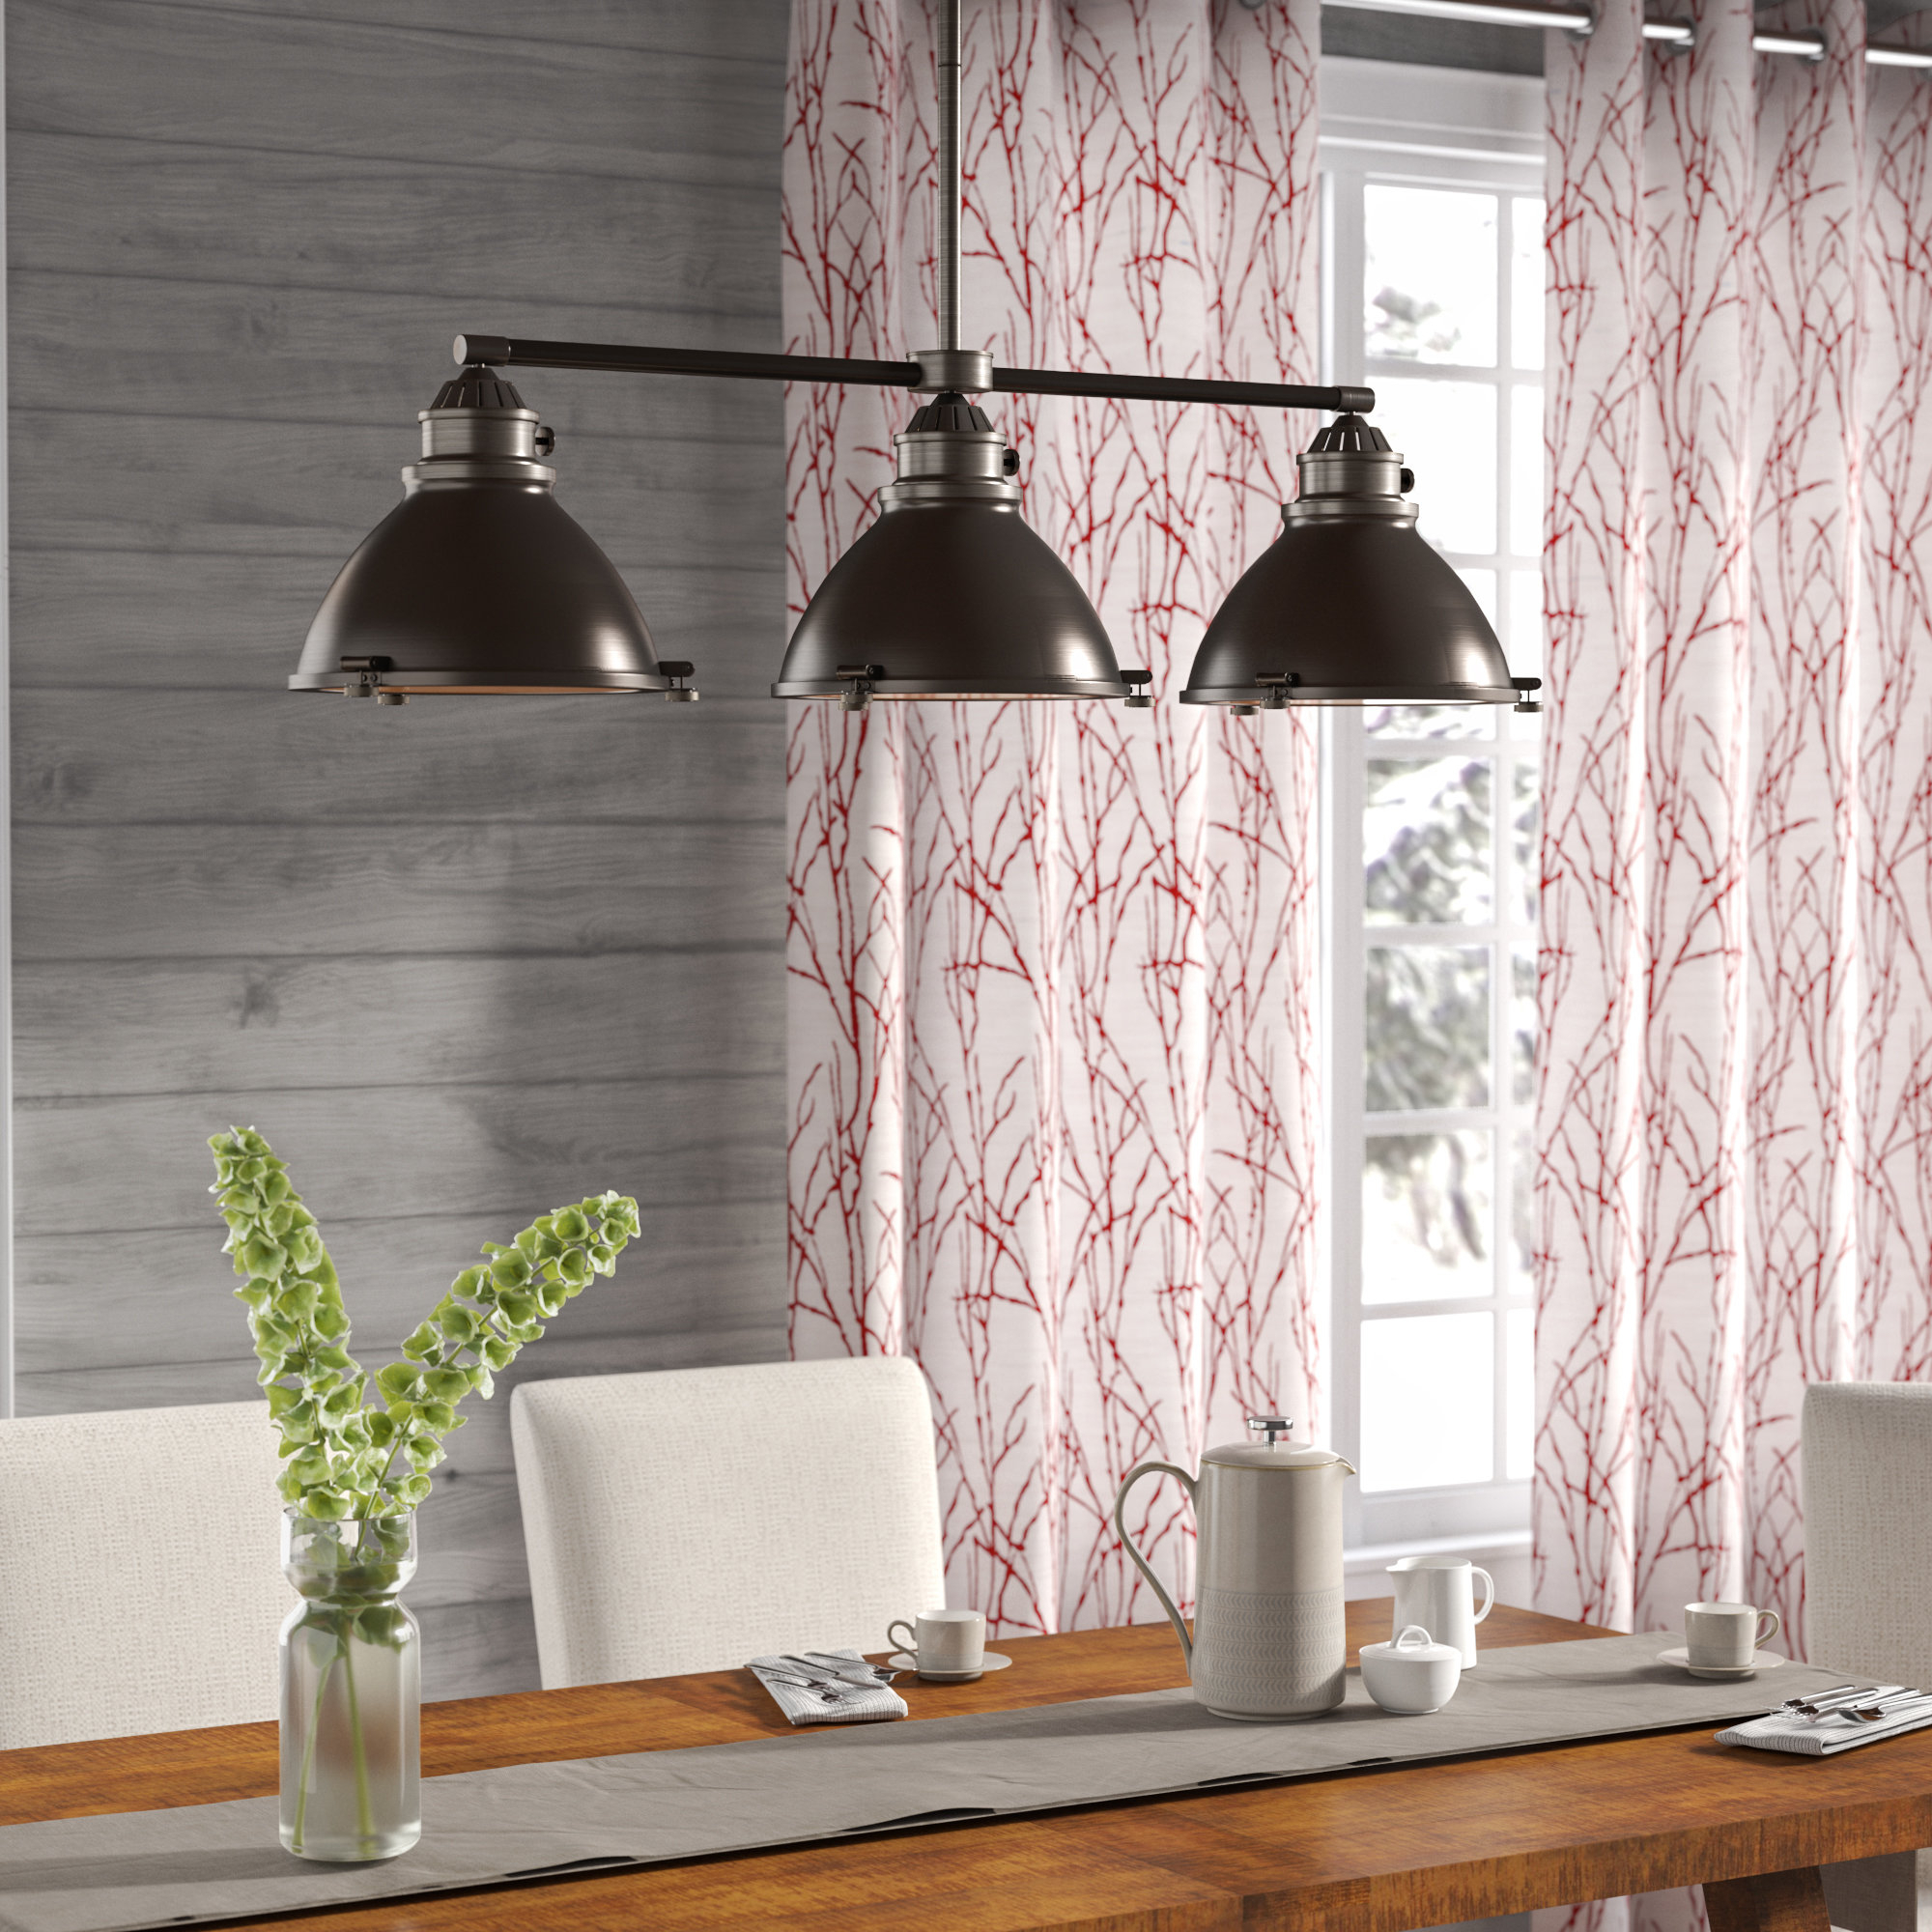 Fredela 3 Light Kitchen Island Pendants Pertaining To Latest Dewey 3 Light Kitchen Island Linear Pendant (View 9 of 20)